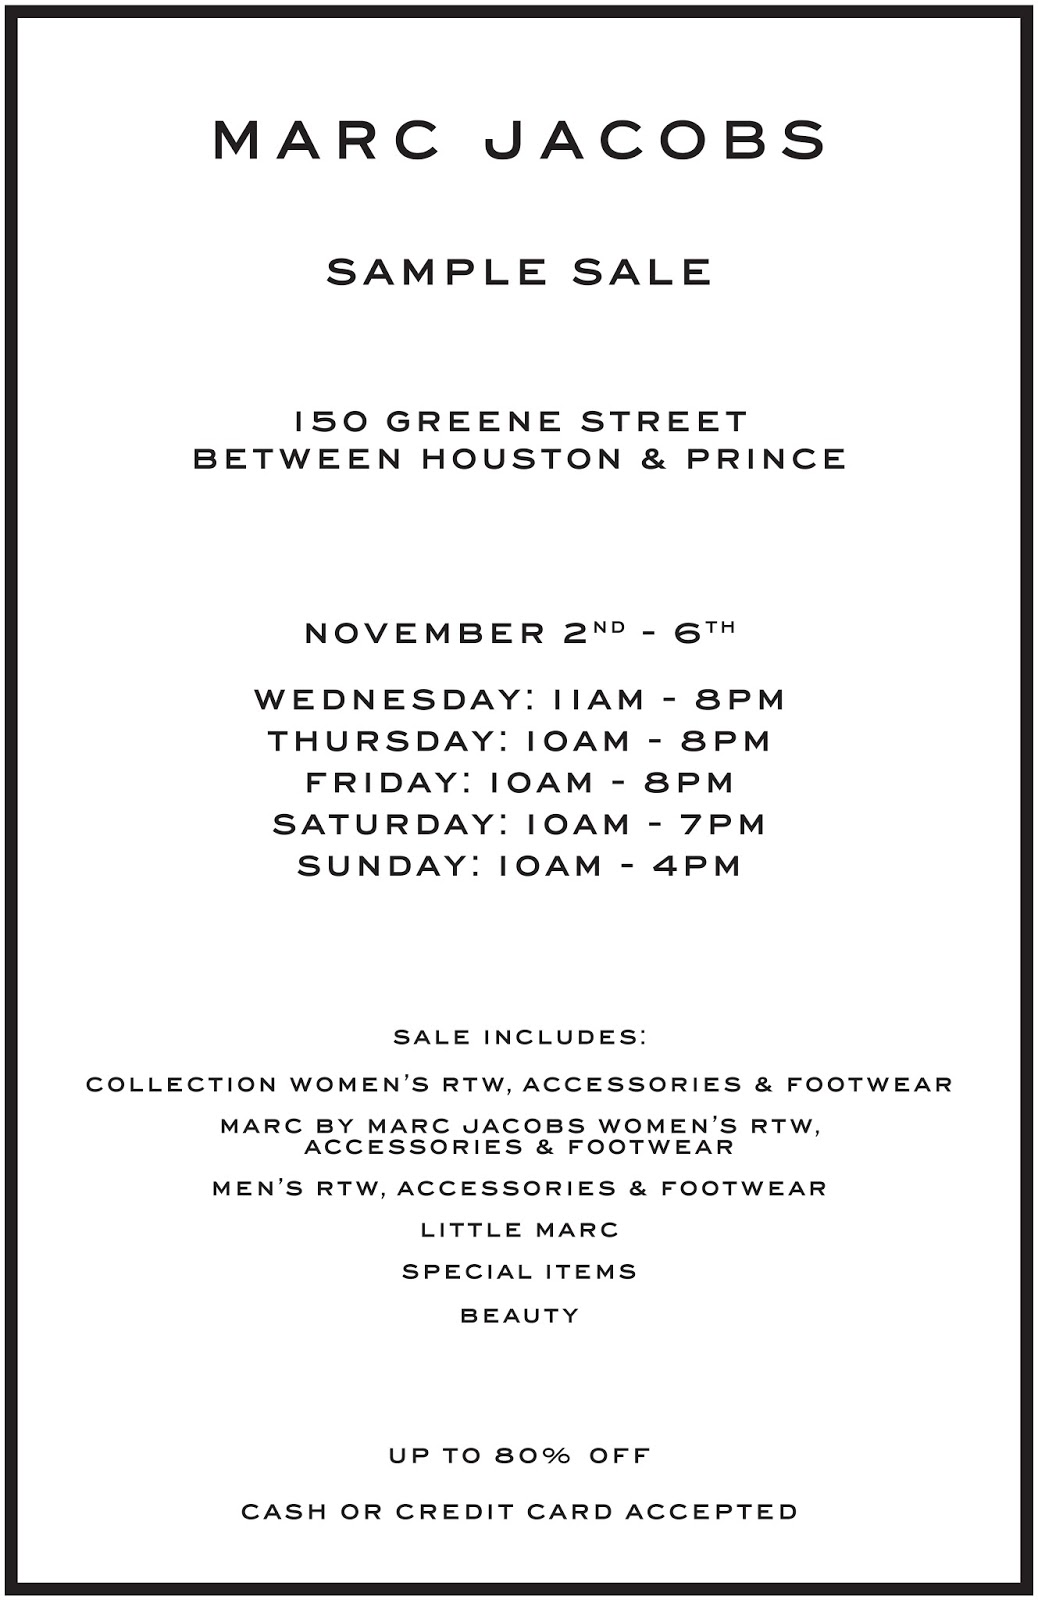 f708da003e2 fashionably petite  Marc Jacobs Sample Sale - 11 2 - 11 6 16